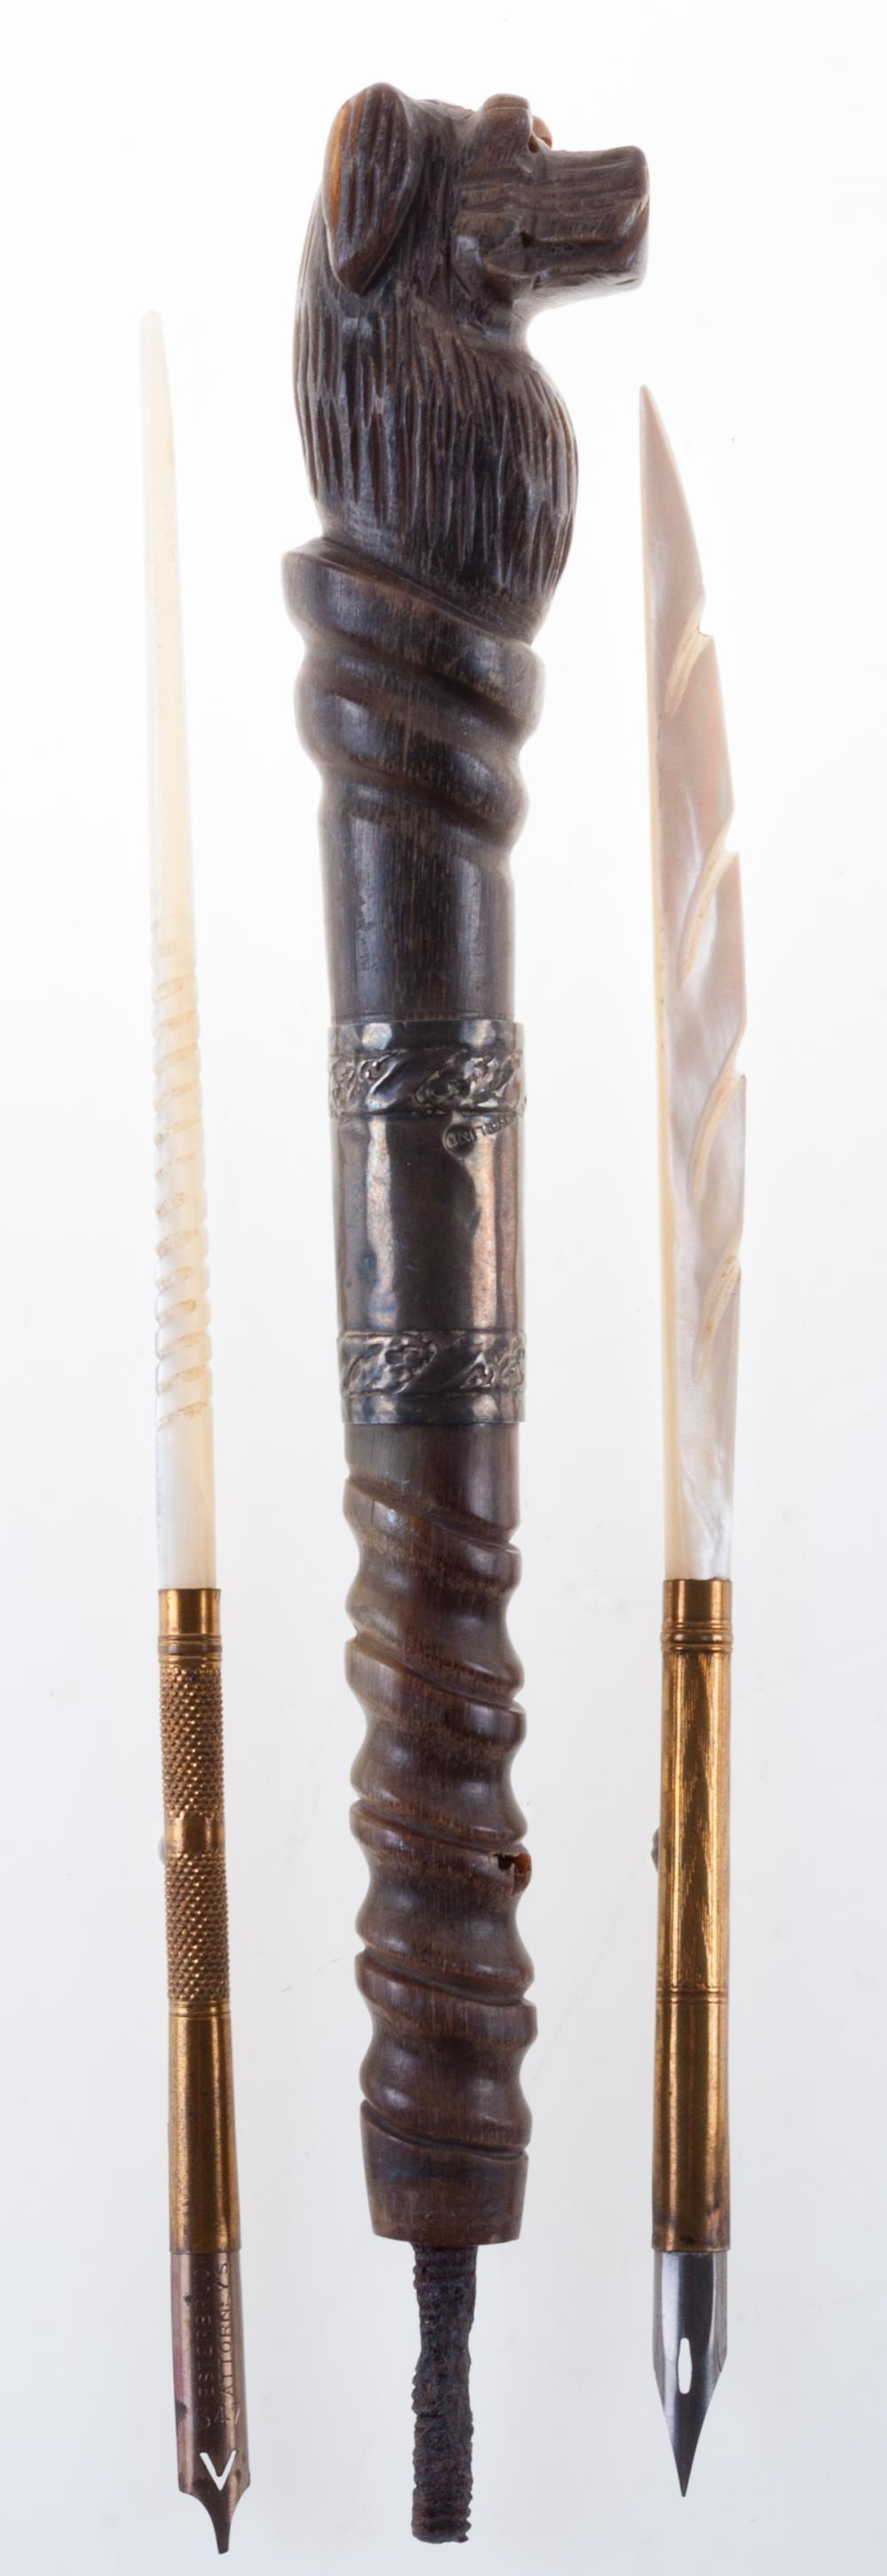 Carved Dog's Head Umbrella Handle & Two Dip Pens